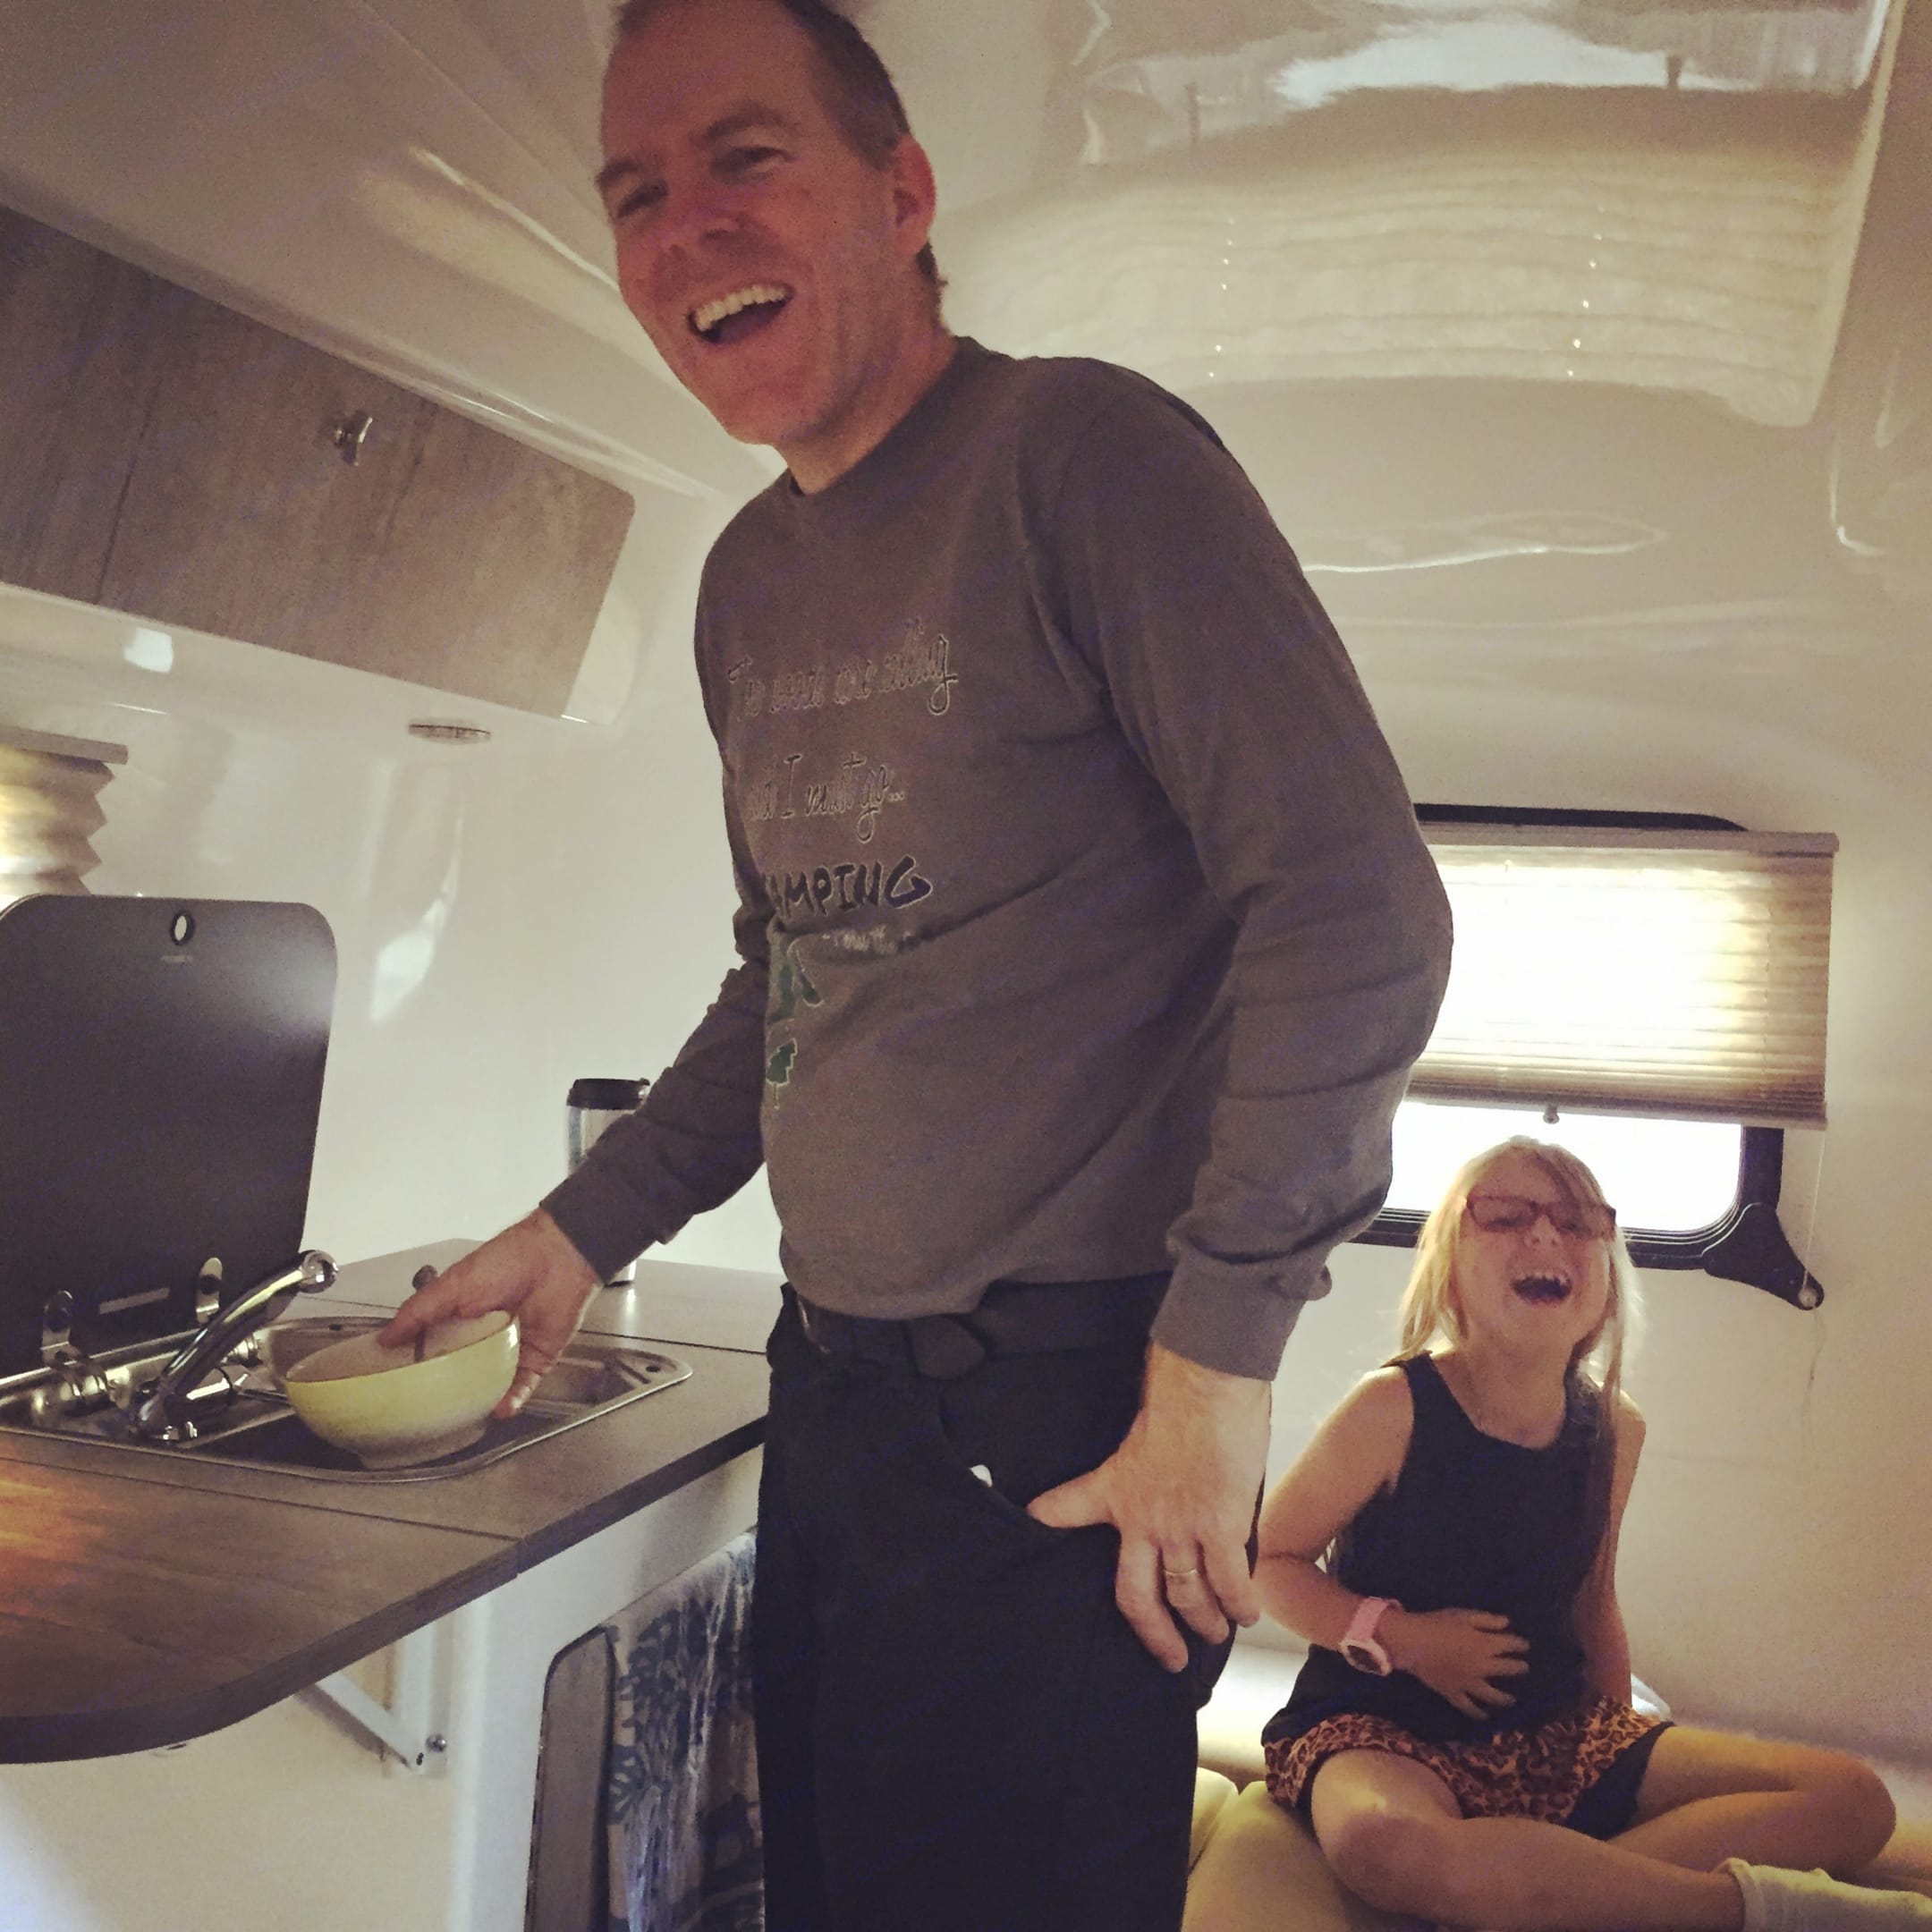 The kitchenette hooks up to city water but it doesn't have to - remove the whole unit and have dinner and cooking outside. Just note, the sink won't pump water if you're not plugged into the solar - you'll need to bring it back in to wash up afterwards.. happier camper HC1 2019